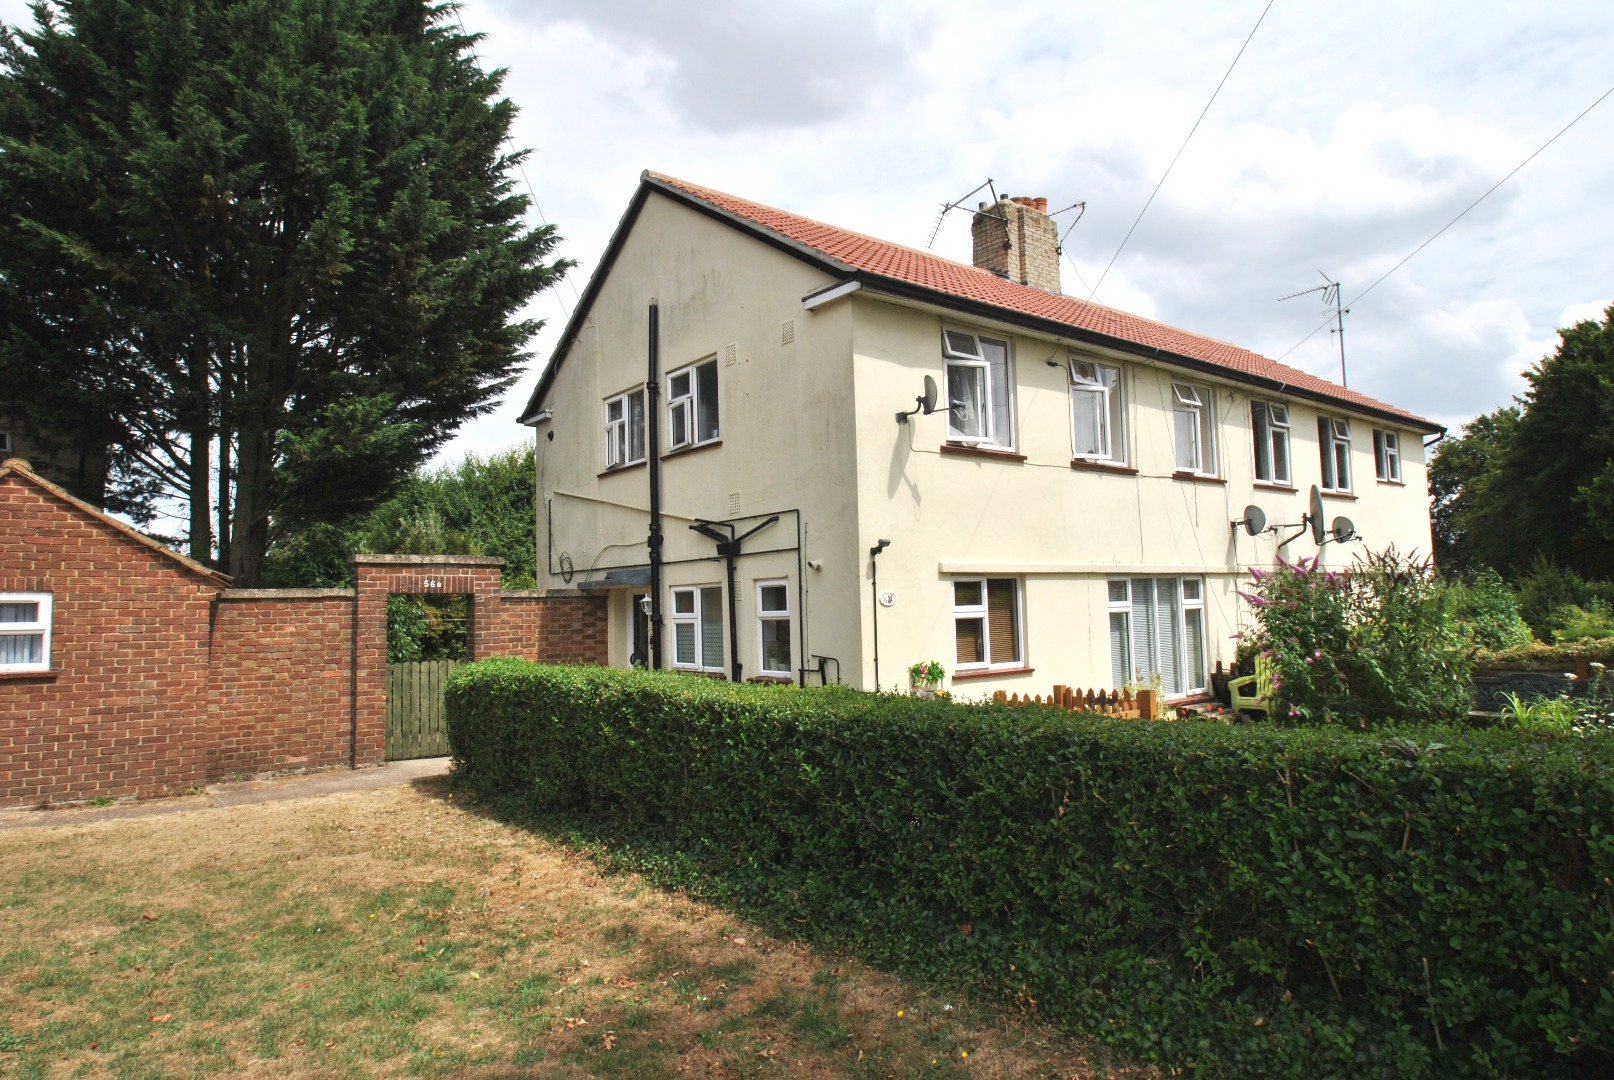 Icknield Way, Letchworth, SG6